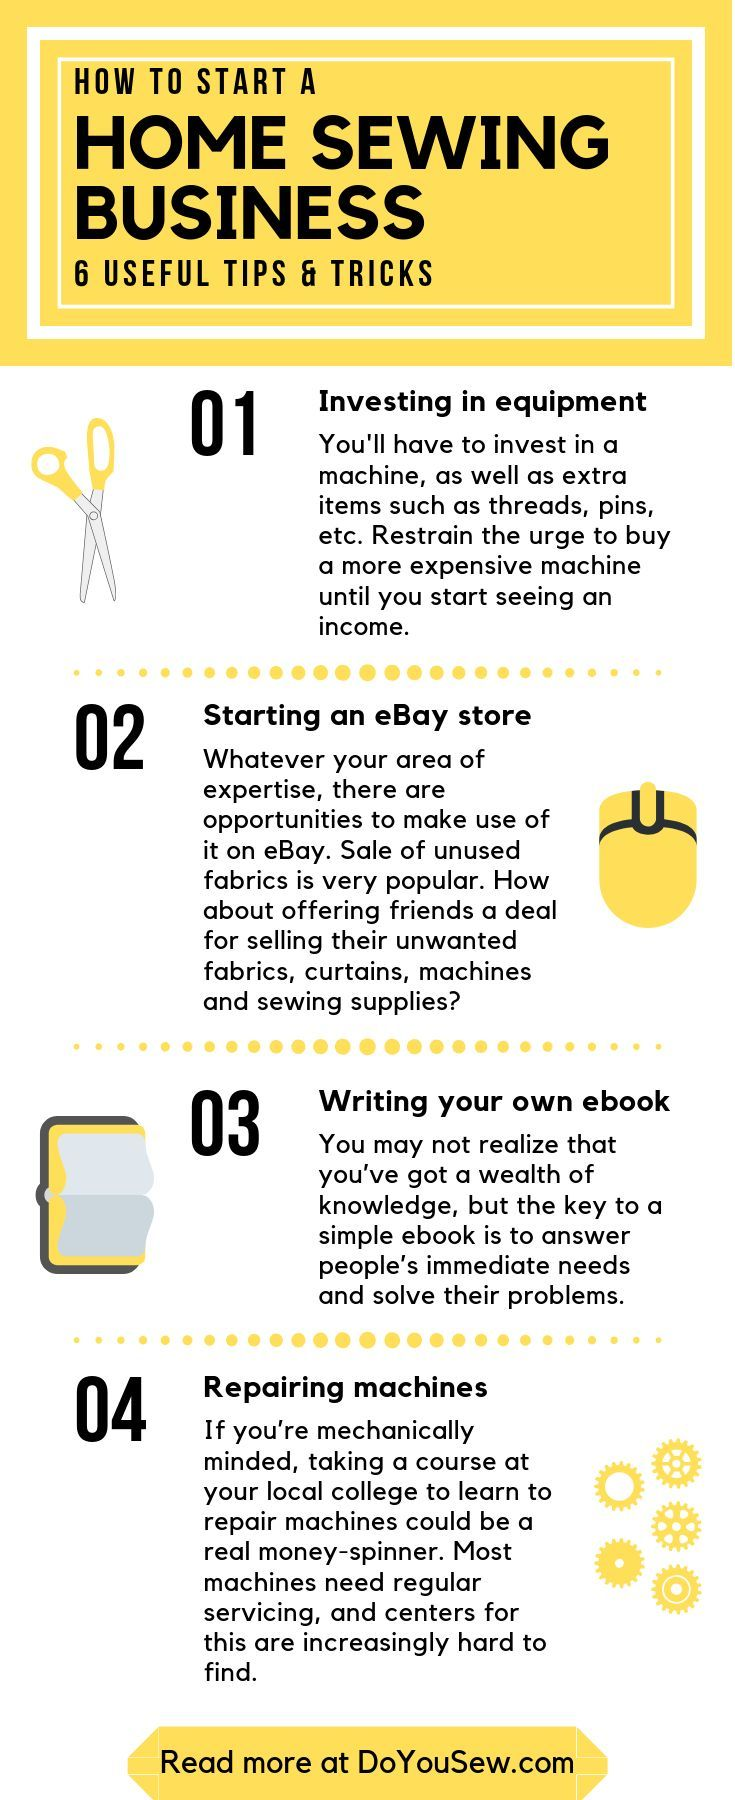 How To Start Your Home Sewing Or Embroidery Business 6 Useful Tips Tricks To Develop A Fully Comme Sewing Business Sewing Machine Reviews Sewing Tutorials